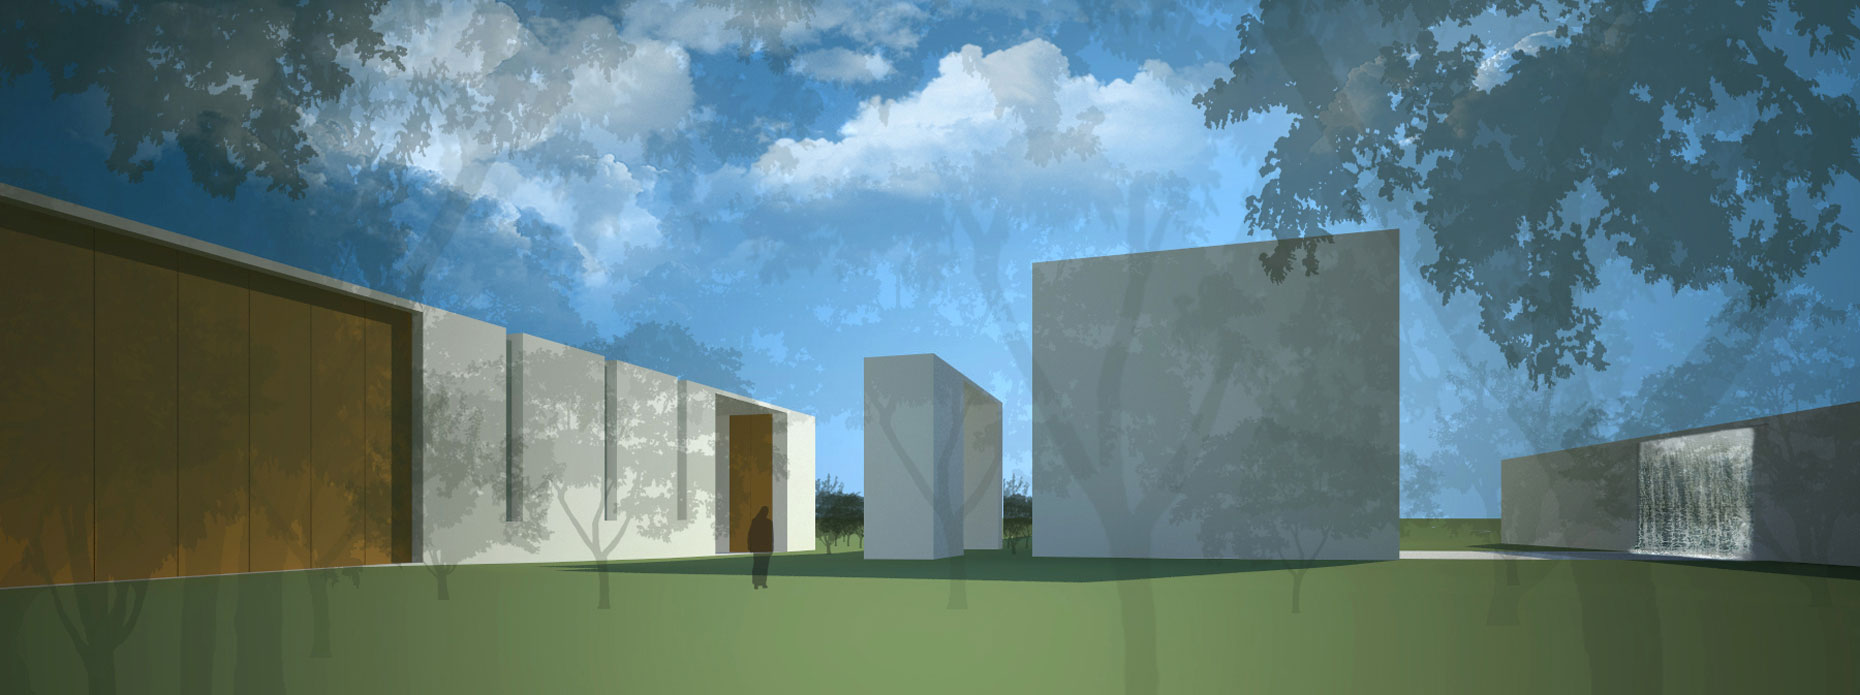 david-hu-architect-cultural-institutional_ICM-Sisters-Texas_10.jpg